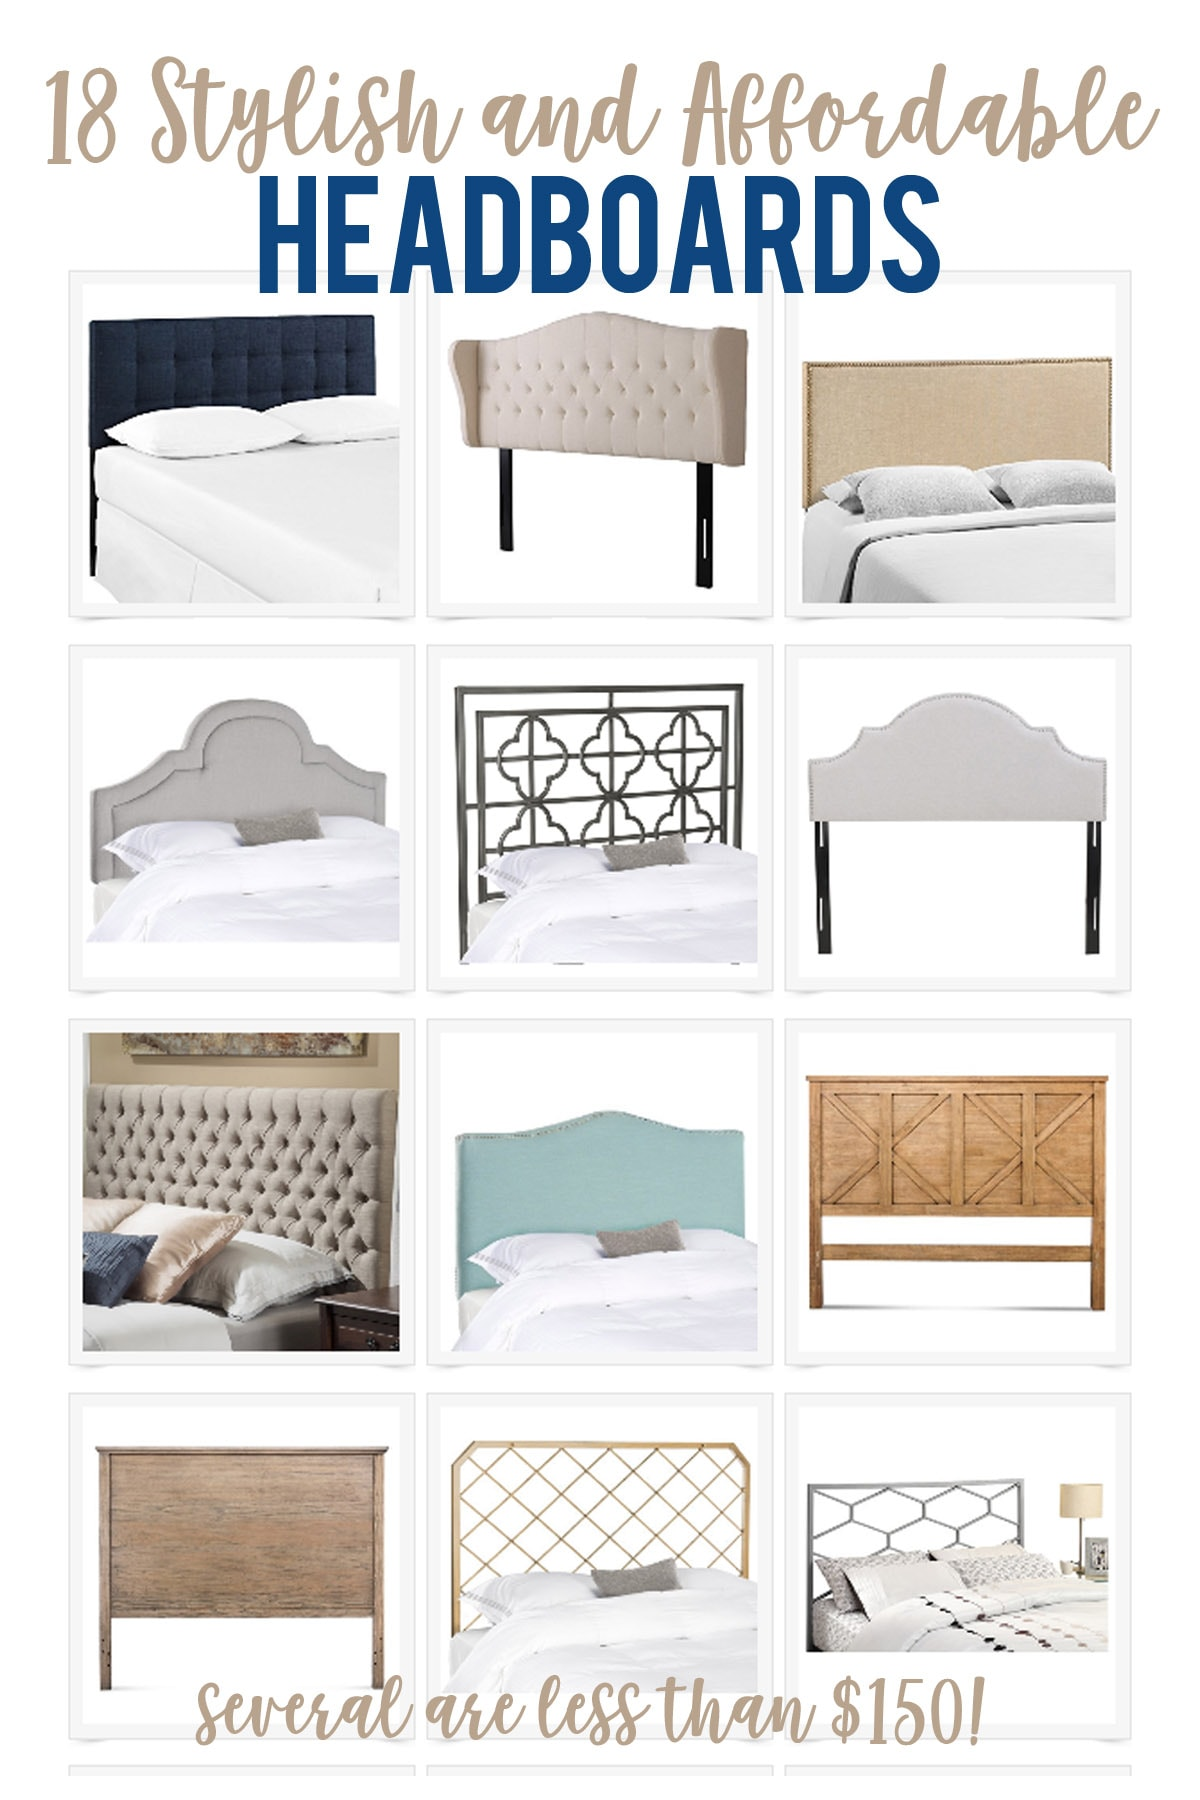 stylish and affordable headboards - life on virginia street